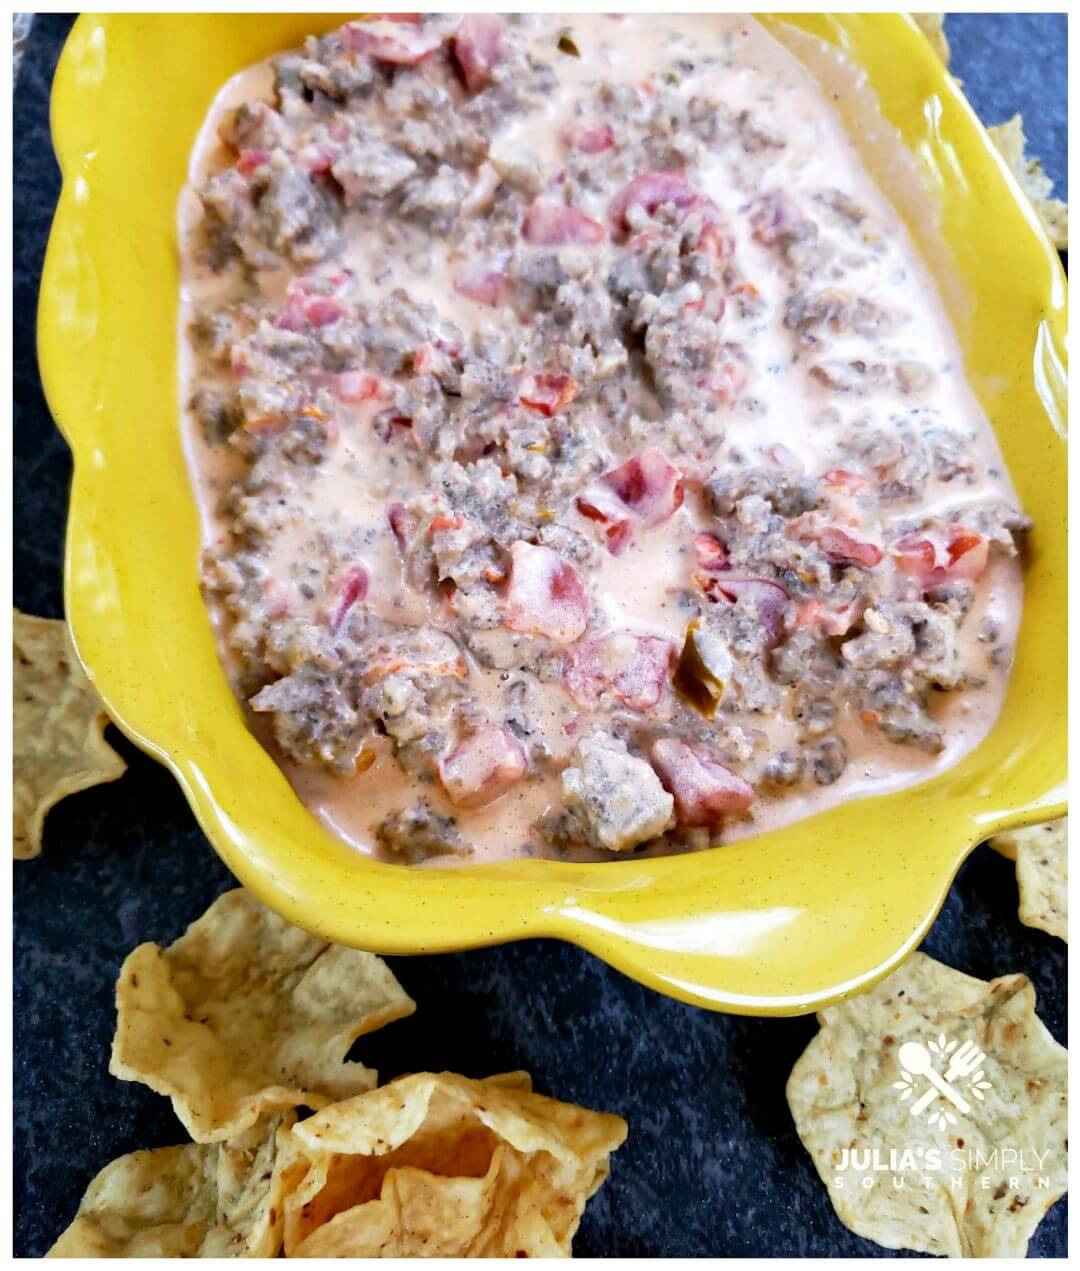 Sausage Dip recipe served in a yellow dish with corn chip scoops